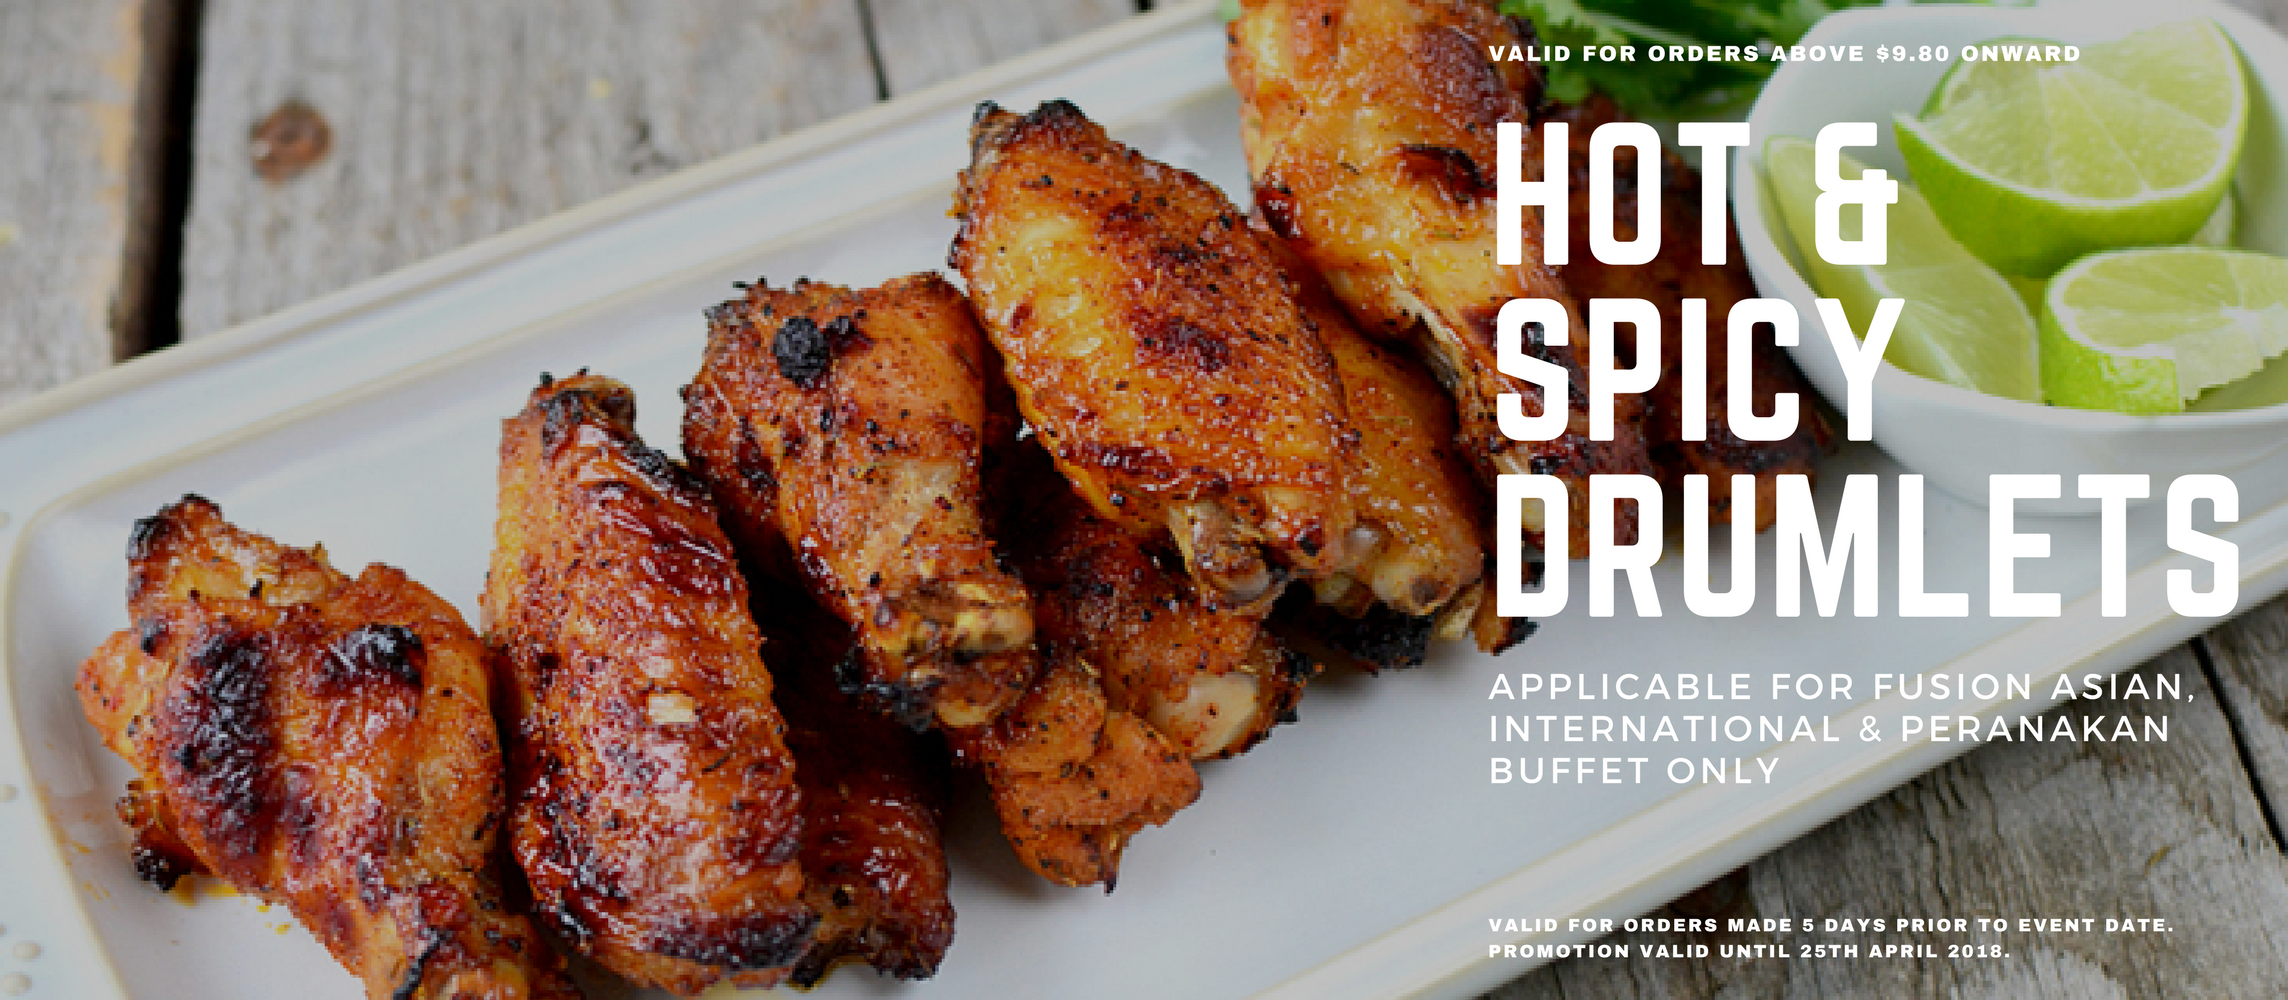 Hot & Spicy Drumlets